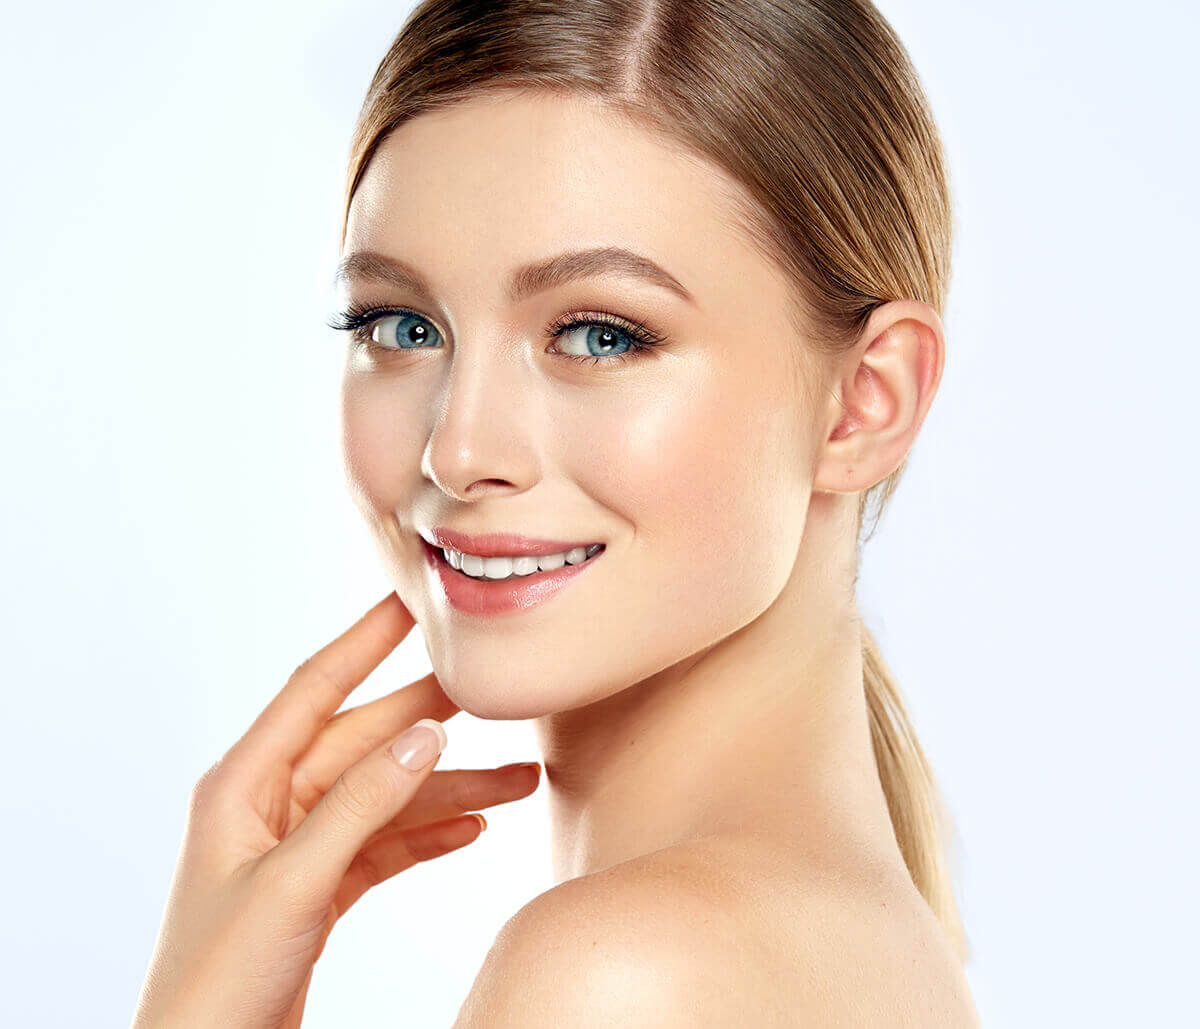 Look Younger with Forma at Our Skin Tightening Clinic in Hamilton, ON Area